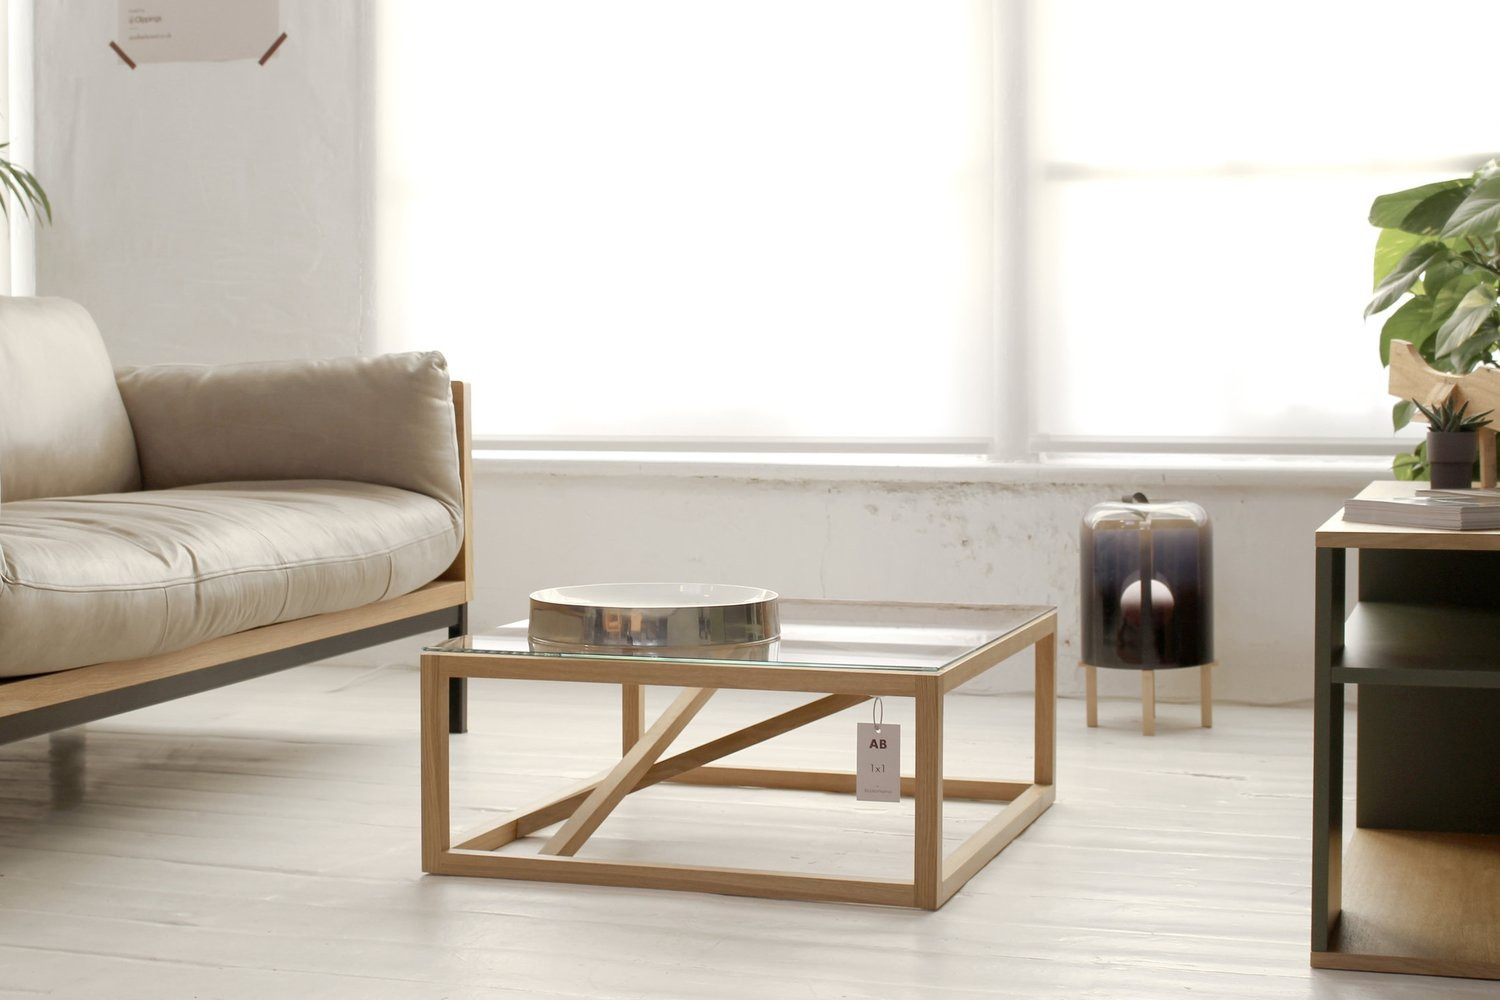 1x1 GlassTrestle Coffee table